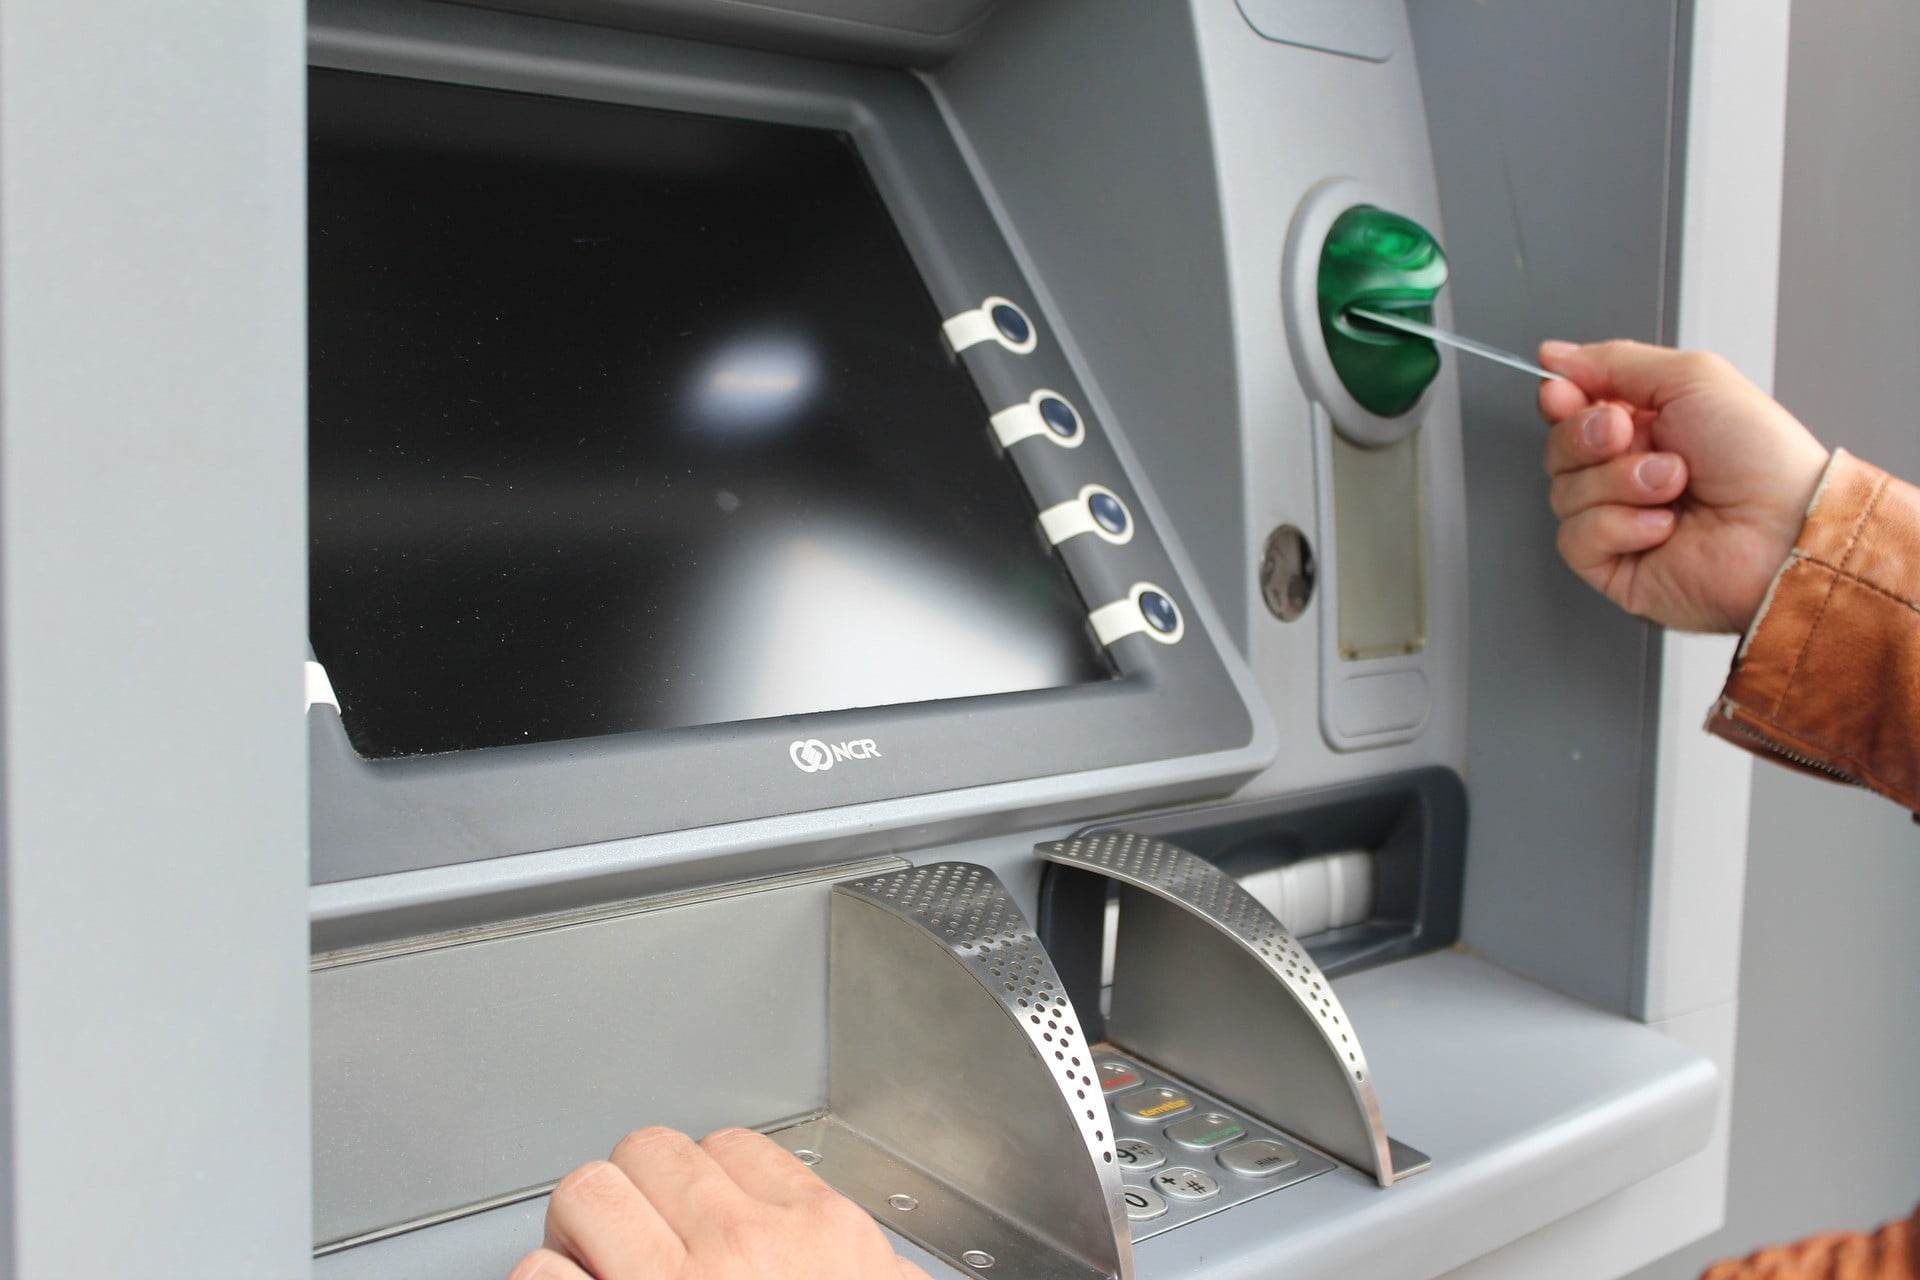 Hackers are targeting ATMs and stealing wads of cash